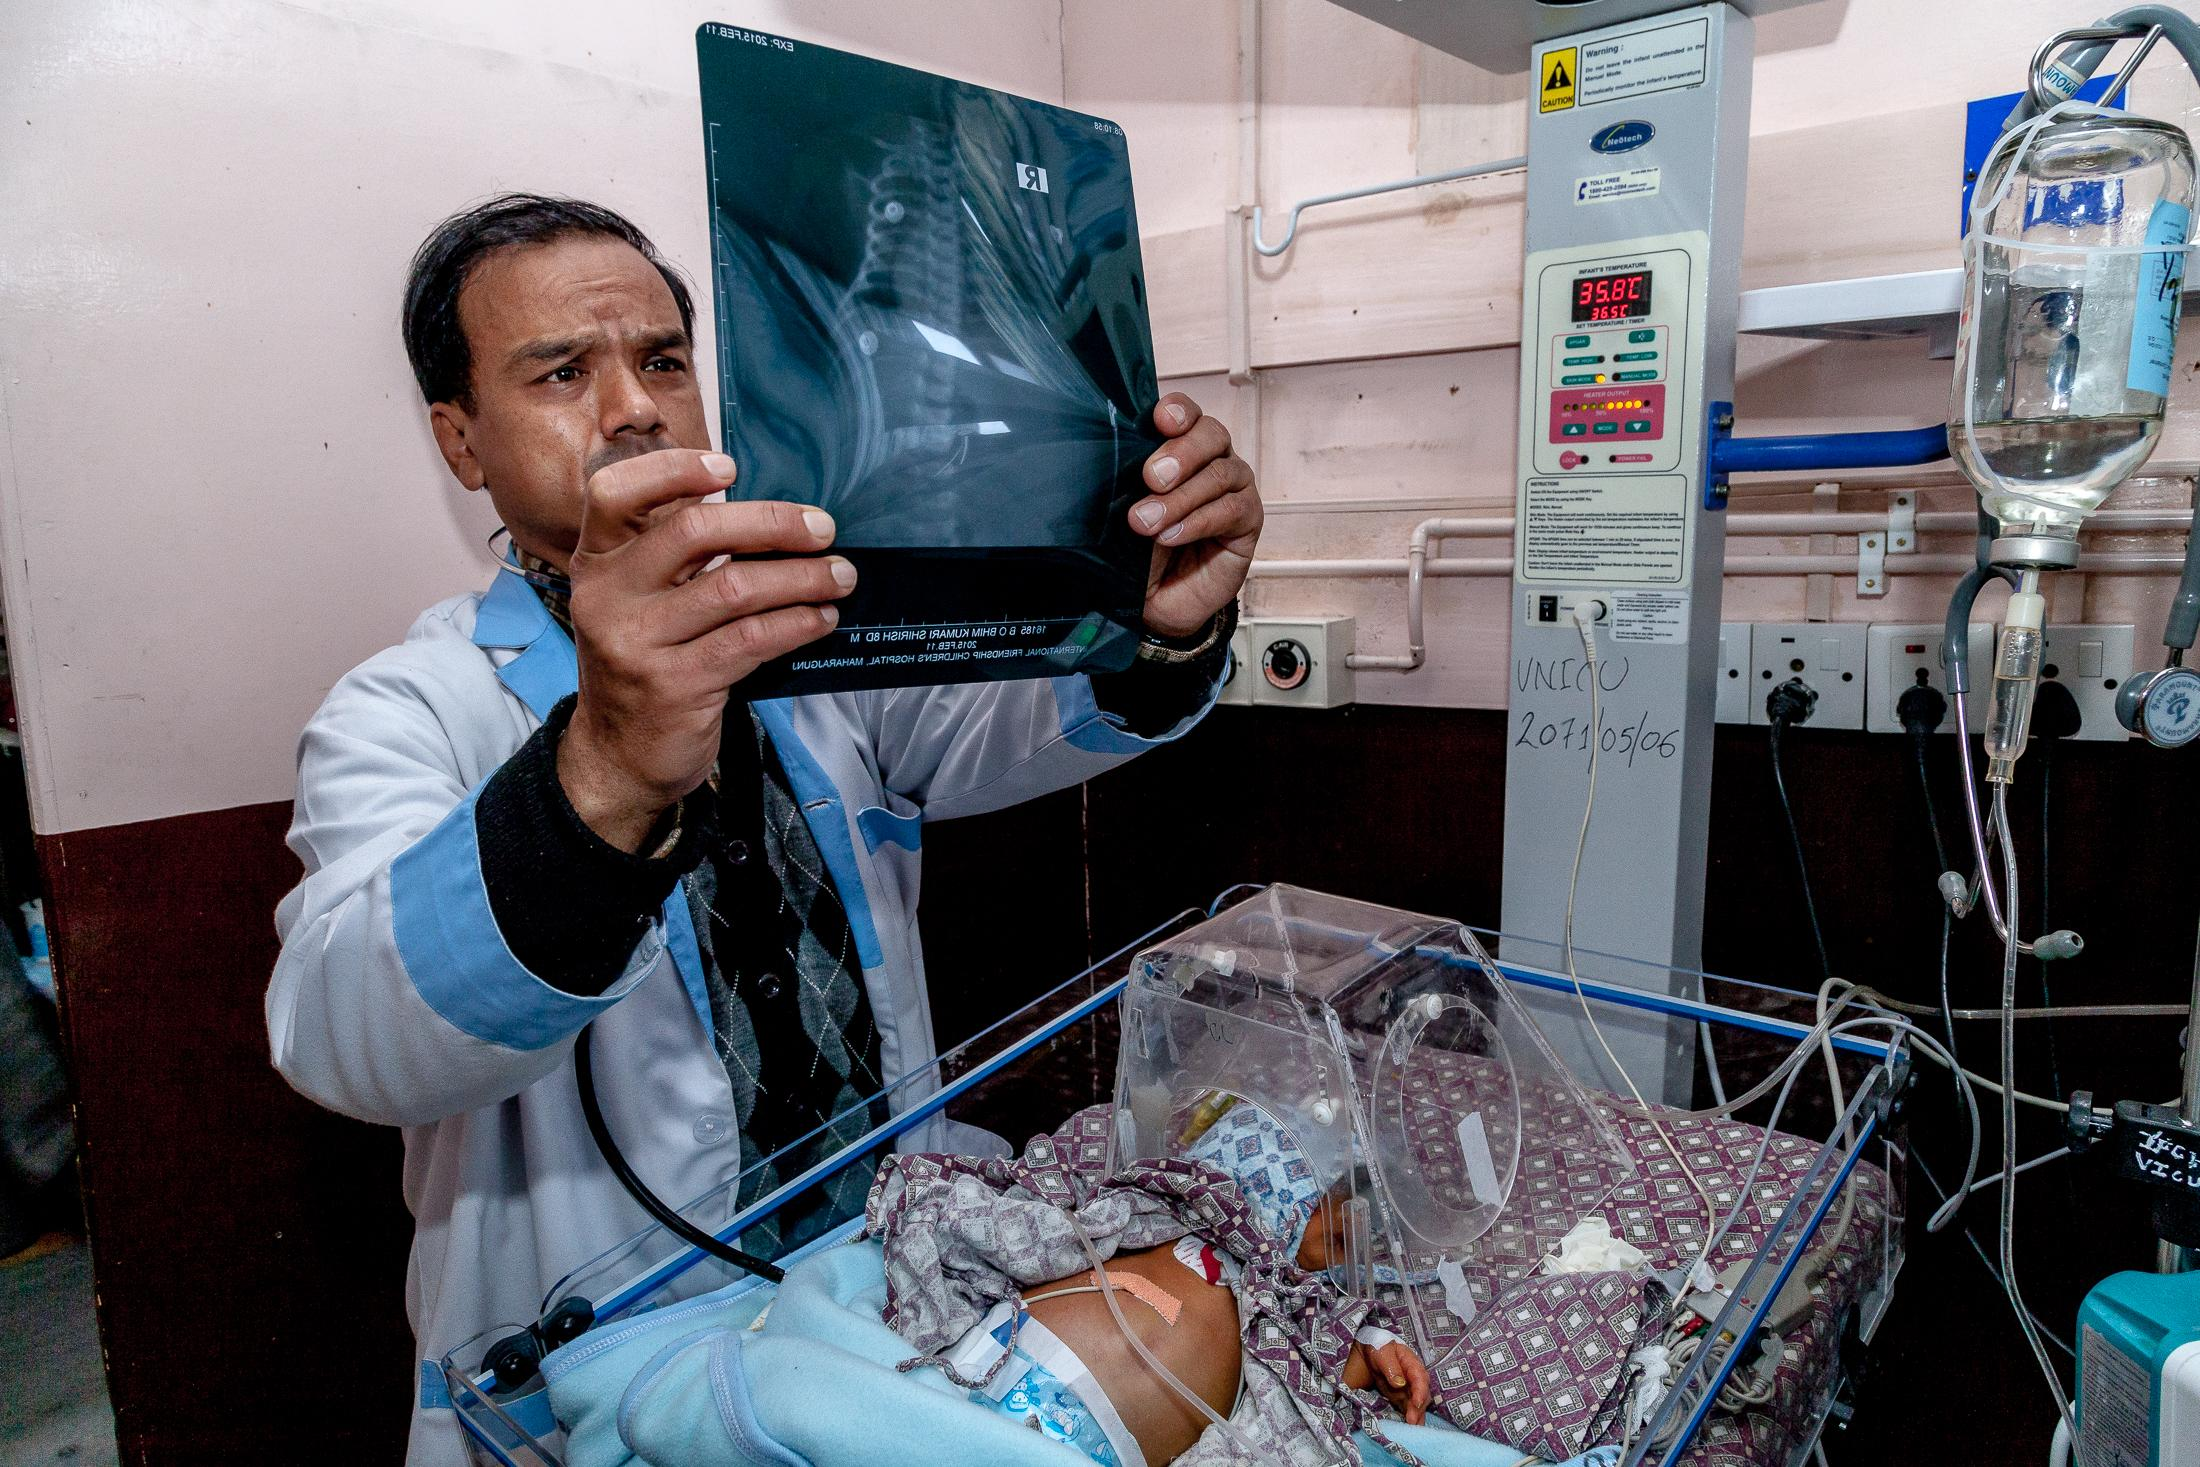 KATHMANDU, NEPAL - FEBRUARY 12, 2015: Dr. Samundra Bajimaya checks the x-ray of a 10-days-old boy suffering from rapid breathing and a neonatal thrombocytopenia - platelet count of less than 150 x 109/l.- at the ICU of the International Friendship Children's Hospital on February 12, 2015 in Kathmandu, Nepal. Mechanical ventilators, which are not available in all hospitals around Nepal, are used to provide breathing support for premature or sick babies. From 1996 to 2006, Nepal reduced by close to 50% its maternal mortality rate, going from 539 deaths in 100,000 to 281, making Nepal a success story. However, each year, 57,000 under-five children still lose their lives, with 54% of those cases occurring within the first month after birth. In 2013, only 50% of births were attended by skilled birth attendants. Several issues remain to be addressed with regards to maternal and newborn health, including tackling inequalities, improving access to care in remote areas, improving quality of care, increasing the use of family planning methods, and reducing malnutrition. Photo: © Omar Havana for UNICEF